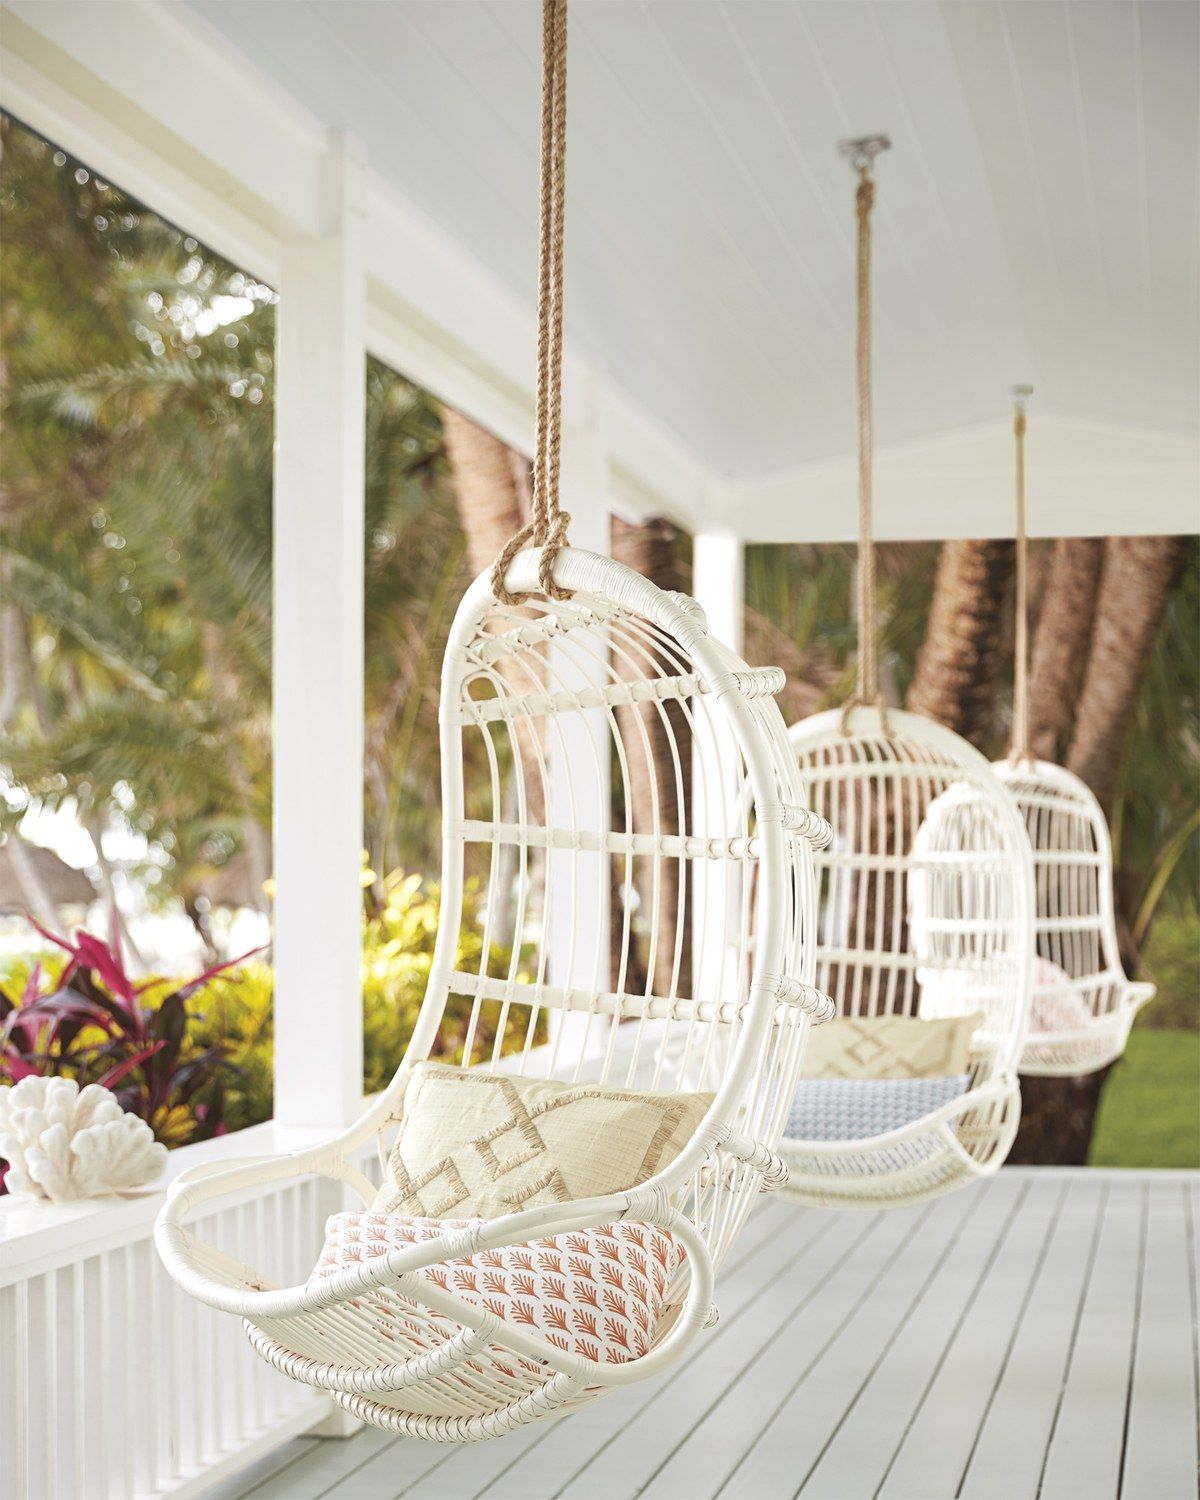 Superior Serena And Lilyu0027s Scandi Style Hanging Rattan Chair Is Handcrafted To  Comfortably Cradle You;